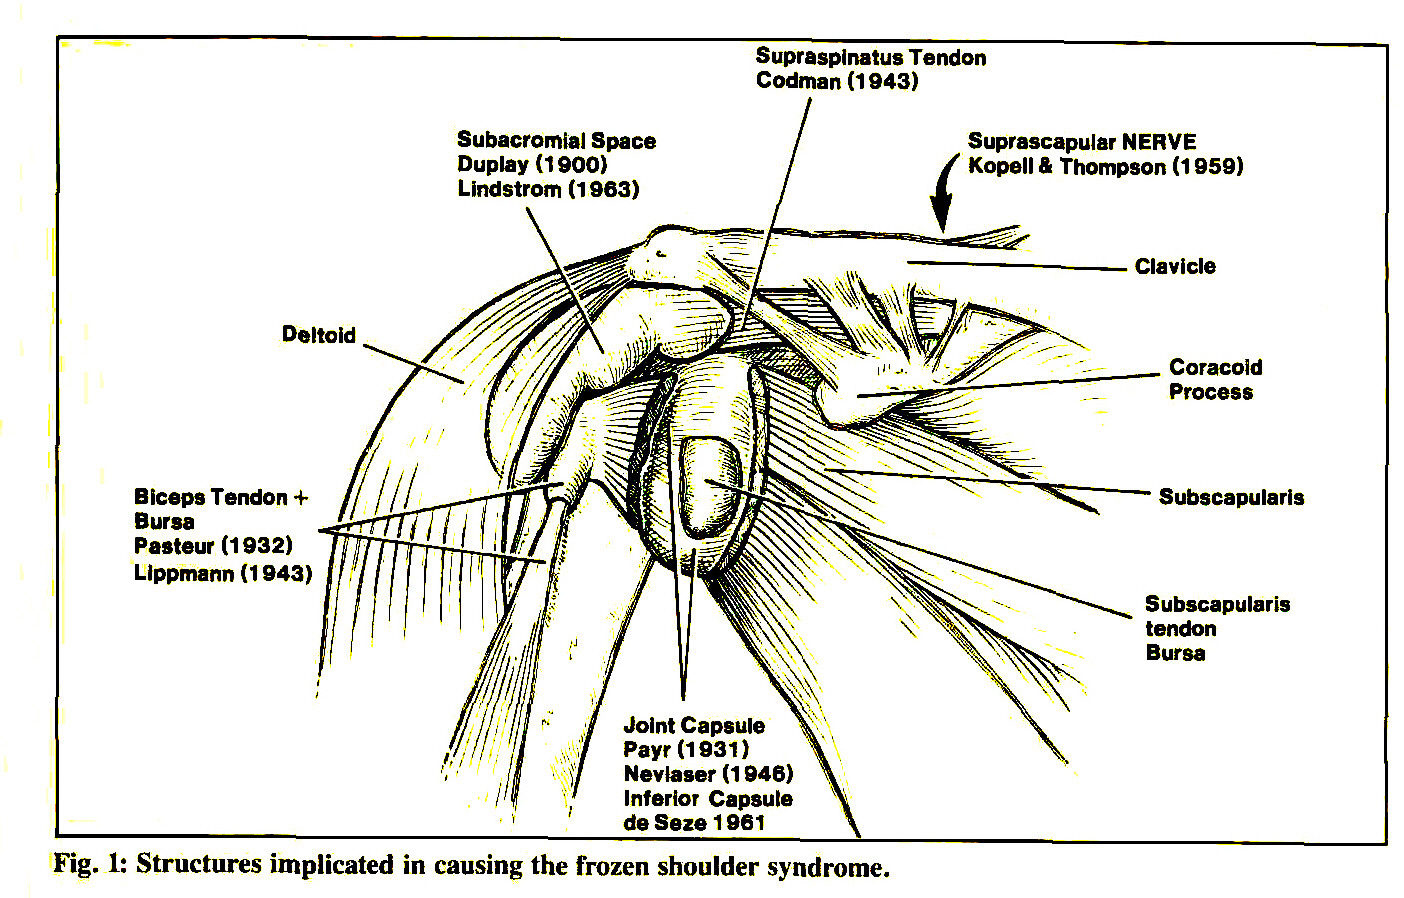 Frozen shoulder and physical therapy - 1 Structures Implicated In Causing The Frozen Shoulder Syndrome